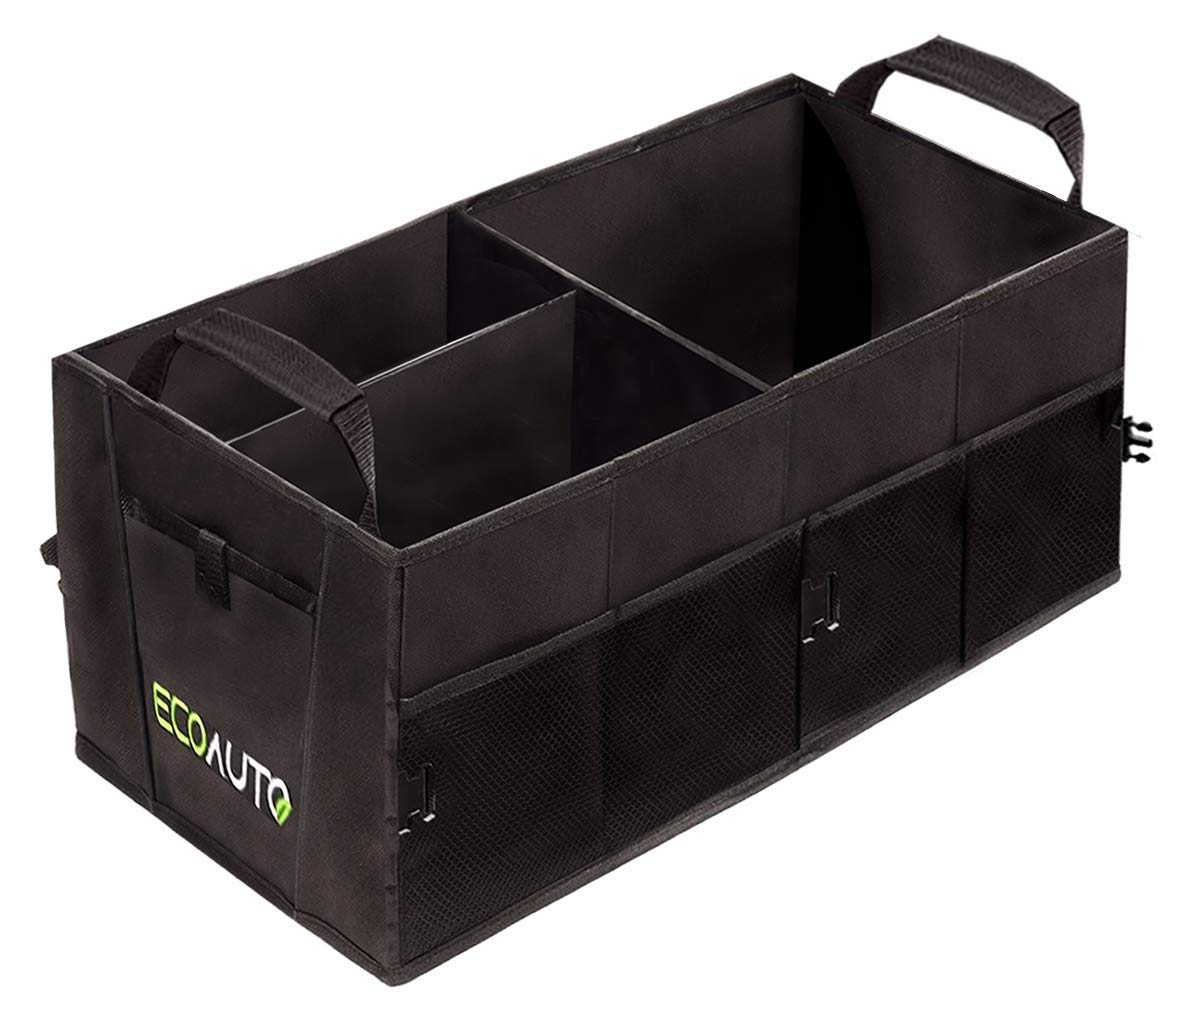 EcoAuto Car Trunk Organizer for SUV, Truck, Minivan & Auto - Foldable & Collapsible Cargo Trunk Storage Box with Straps, Compartments & Multiple Pockets - Space Saving Backseat Storage Basket by EcoAuto